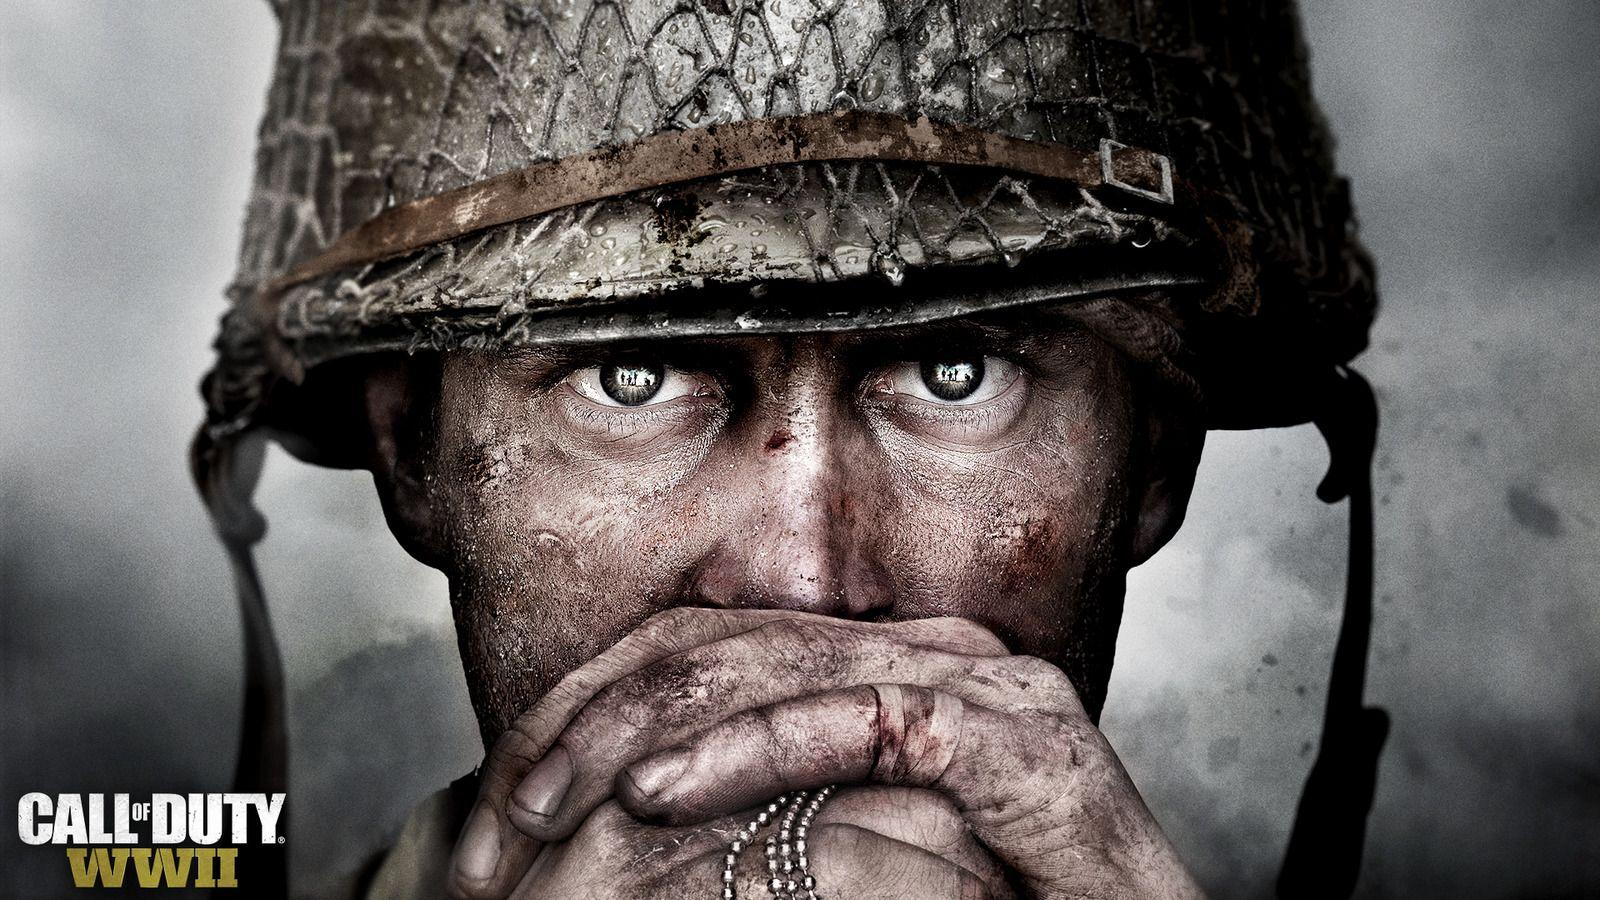 Call of Duty: WWII confirmed, unveiling this Thursday